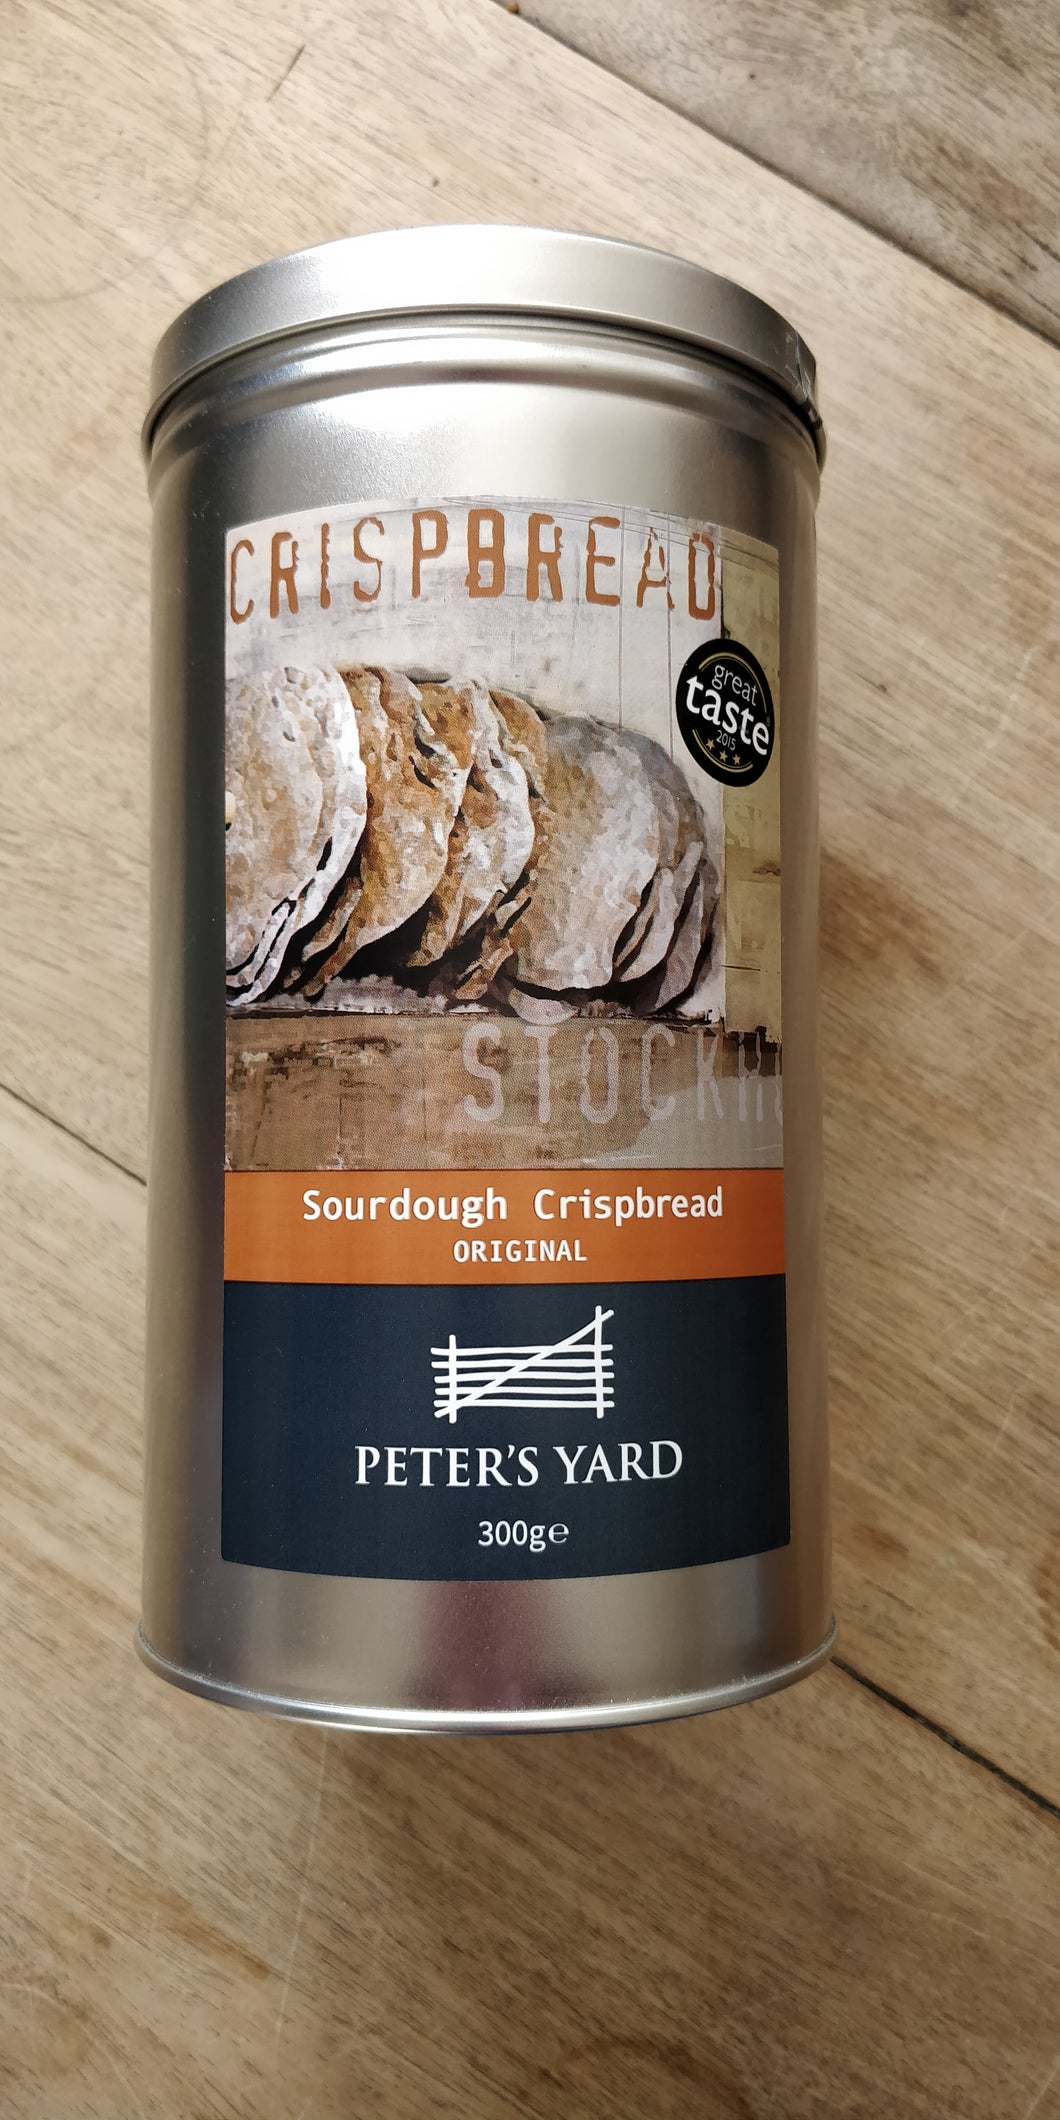 Sourdough crispbread tin - 300g